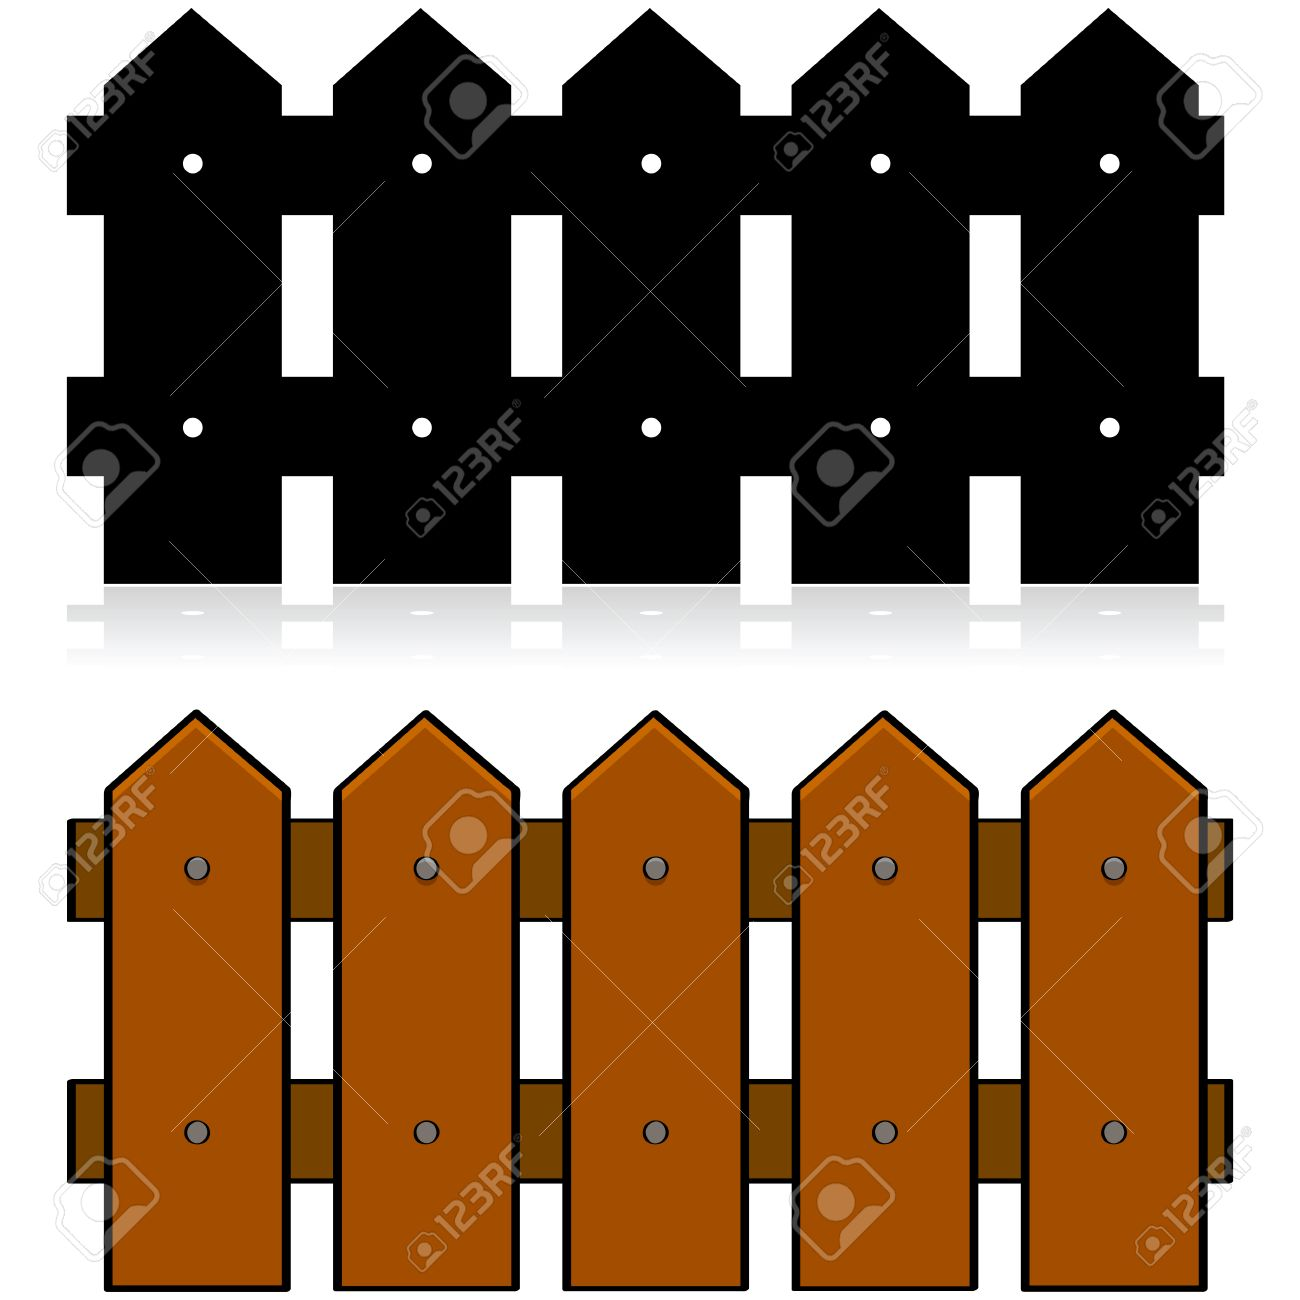 Cartoon Illustration Of A Picket Fence In Color And In Black - Cartoon fence clip art